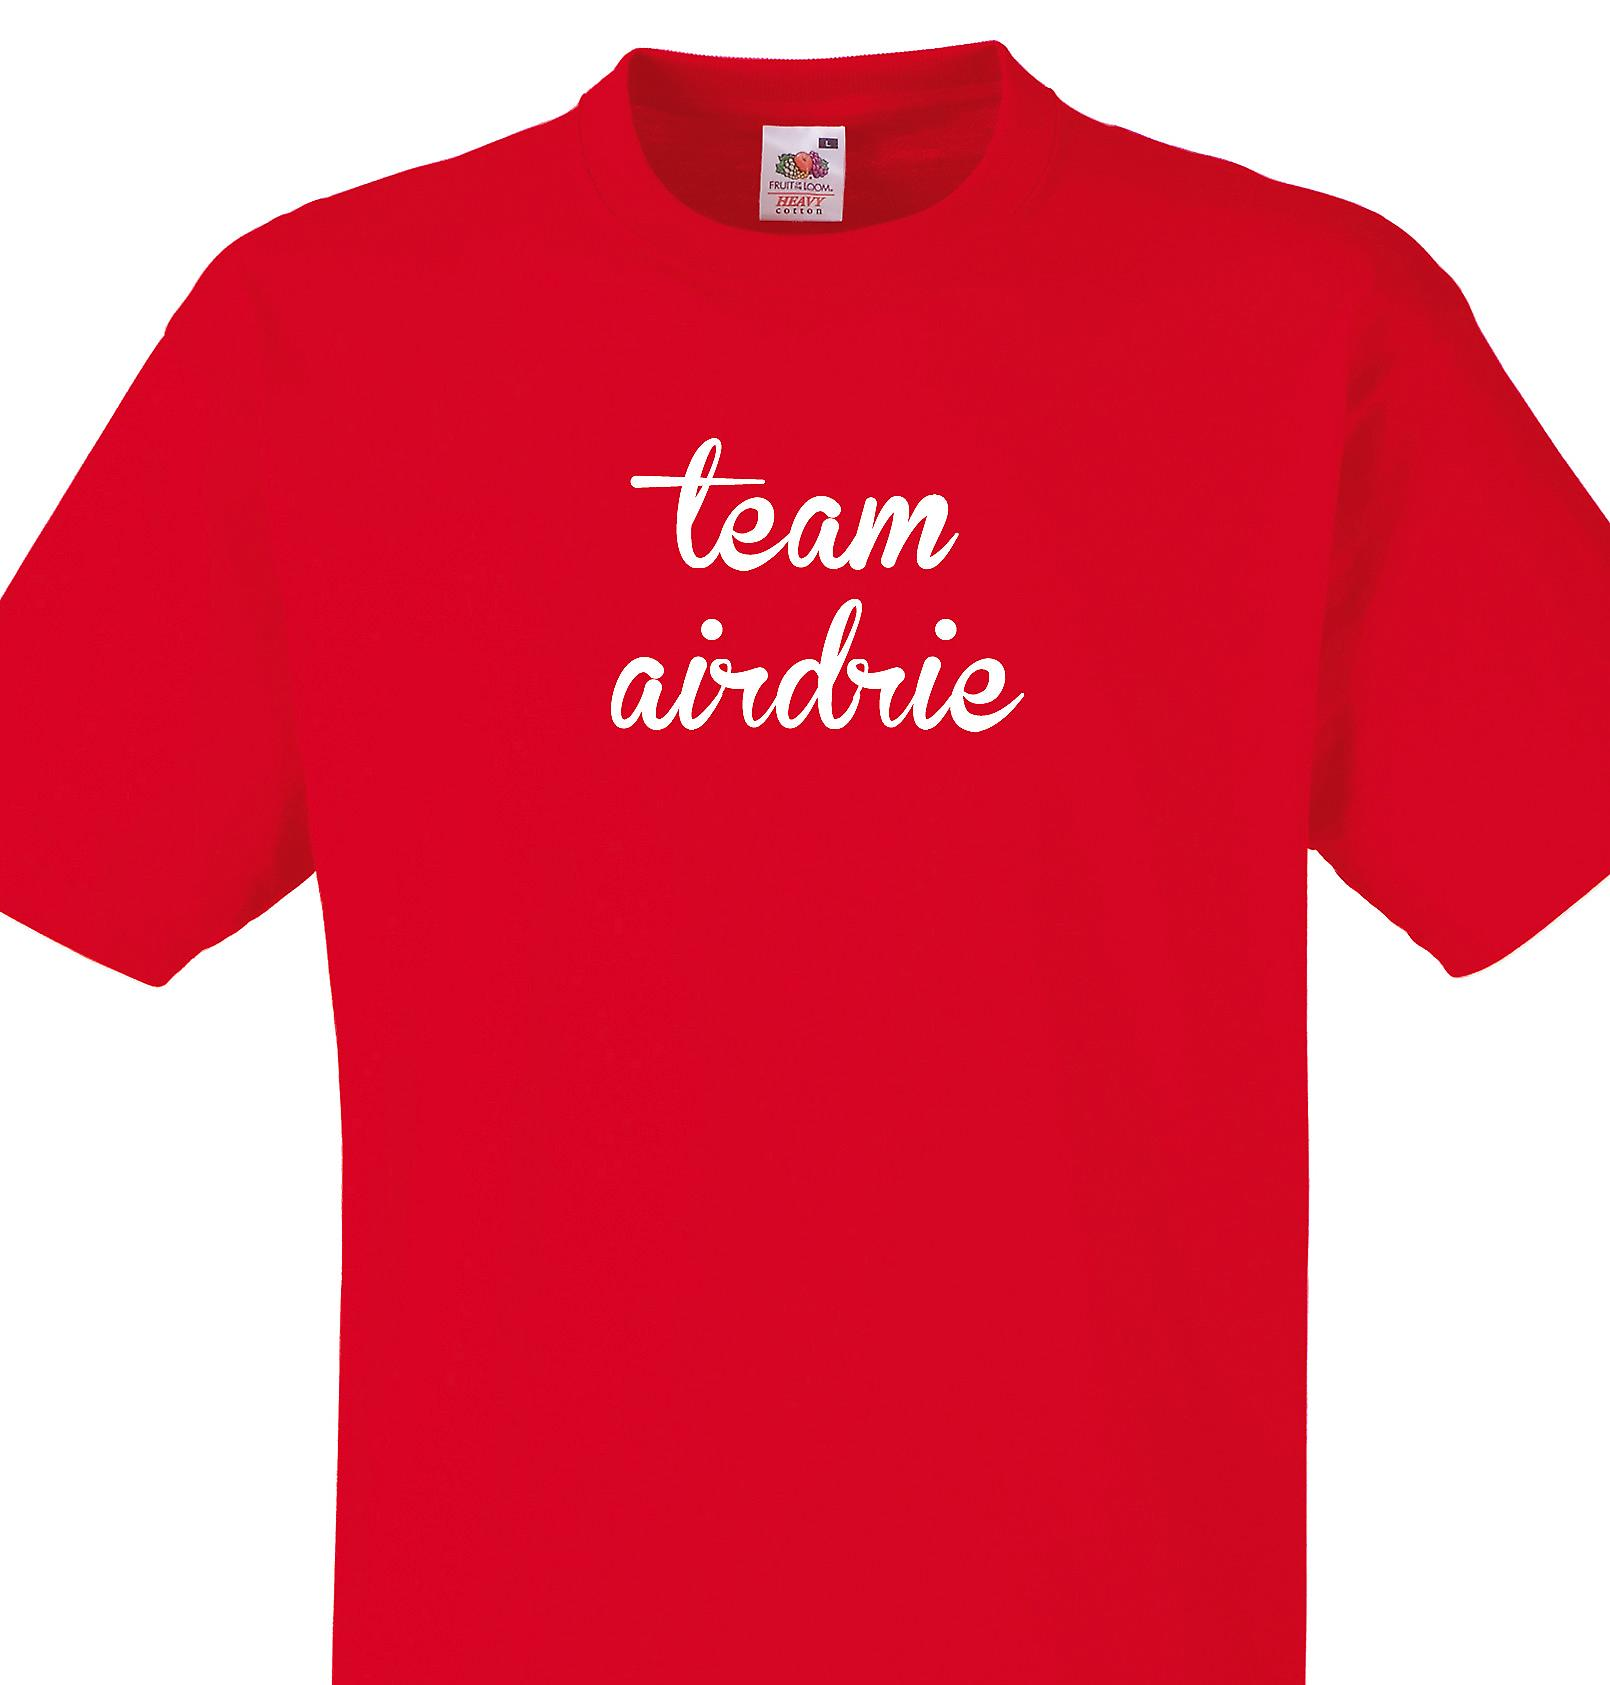 Team Airdrie Red T shirt